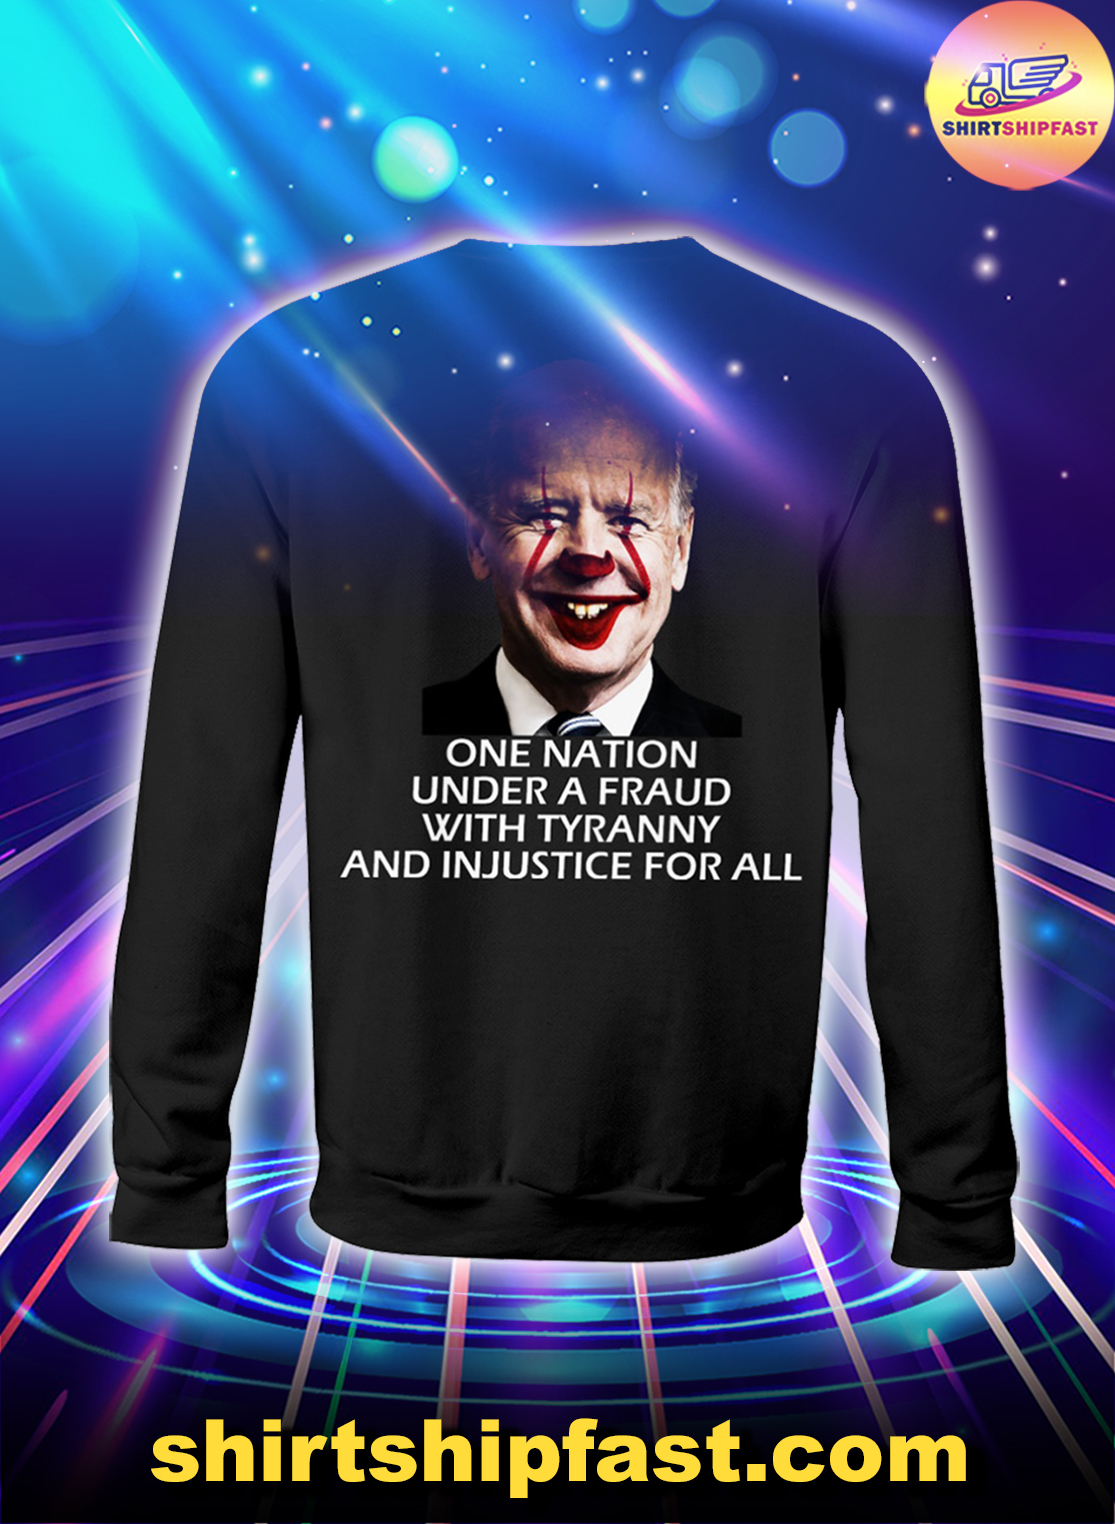 Joker Biden One nation under a fraud with tyranny and injustice for all sweatshirt